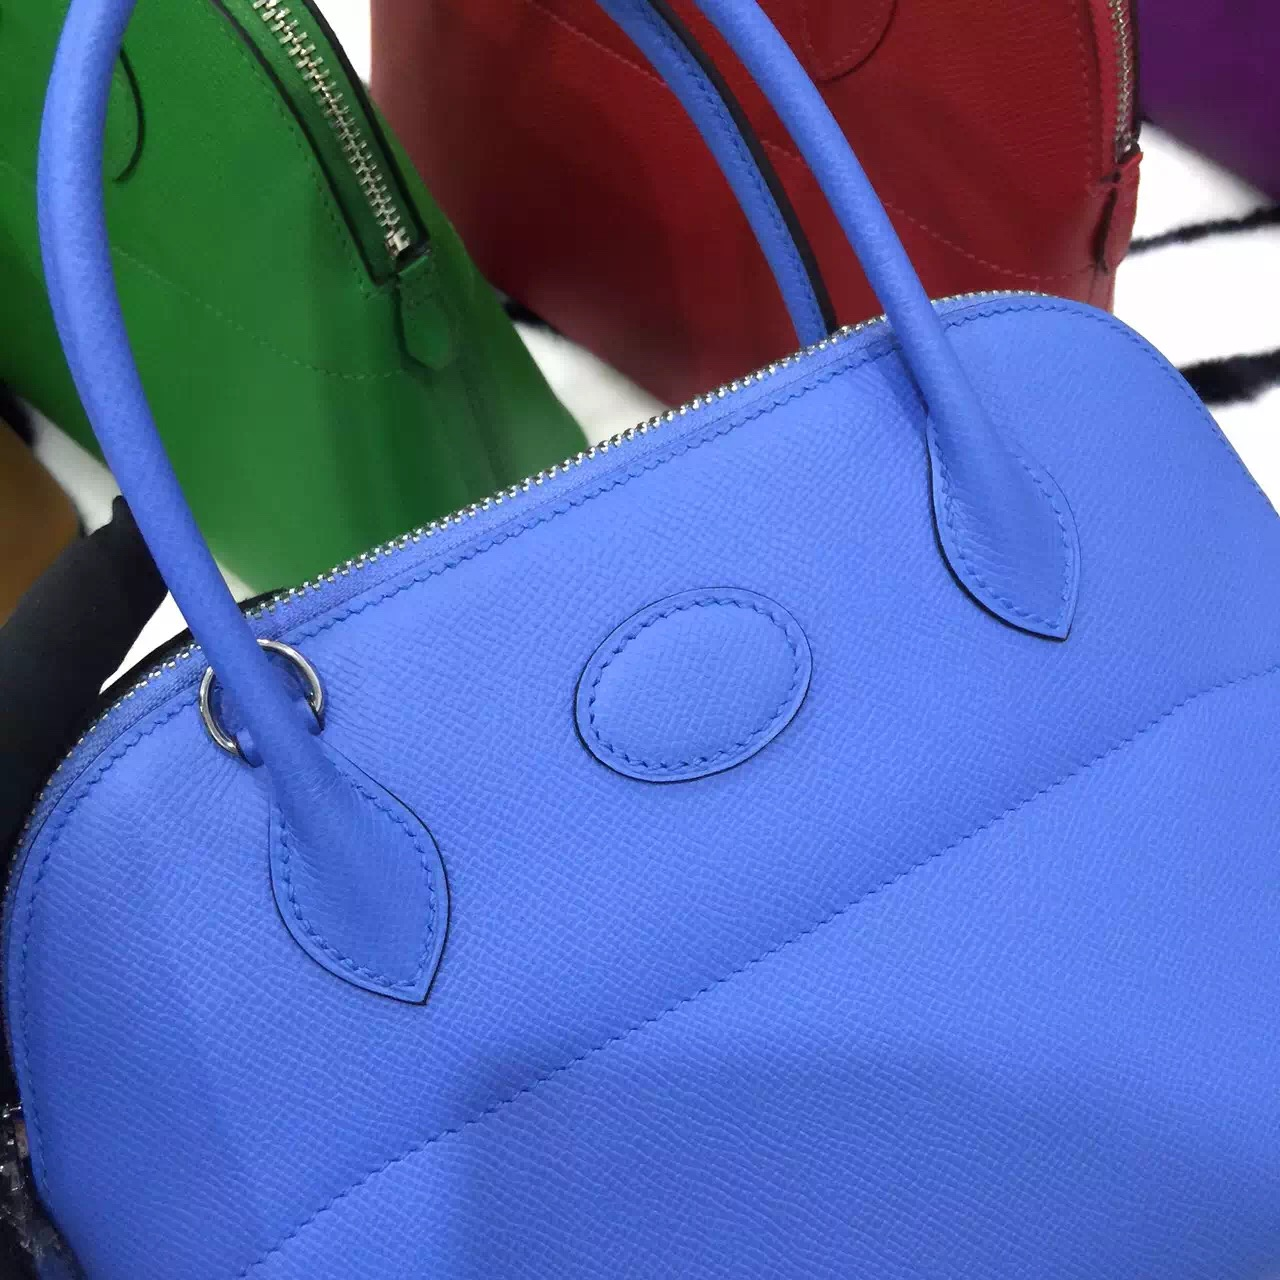 Wholesale Hermes 2T Blue Paradise Epsom Leather Bolide Bag 27CM \u2014 HEMA